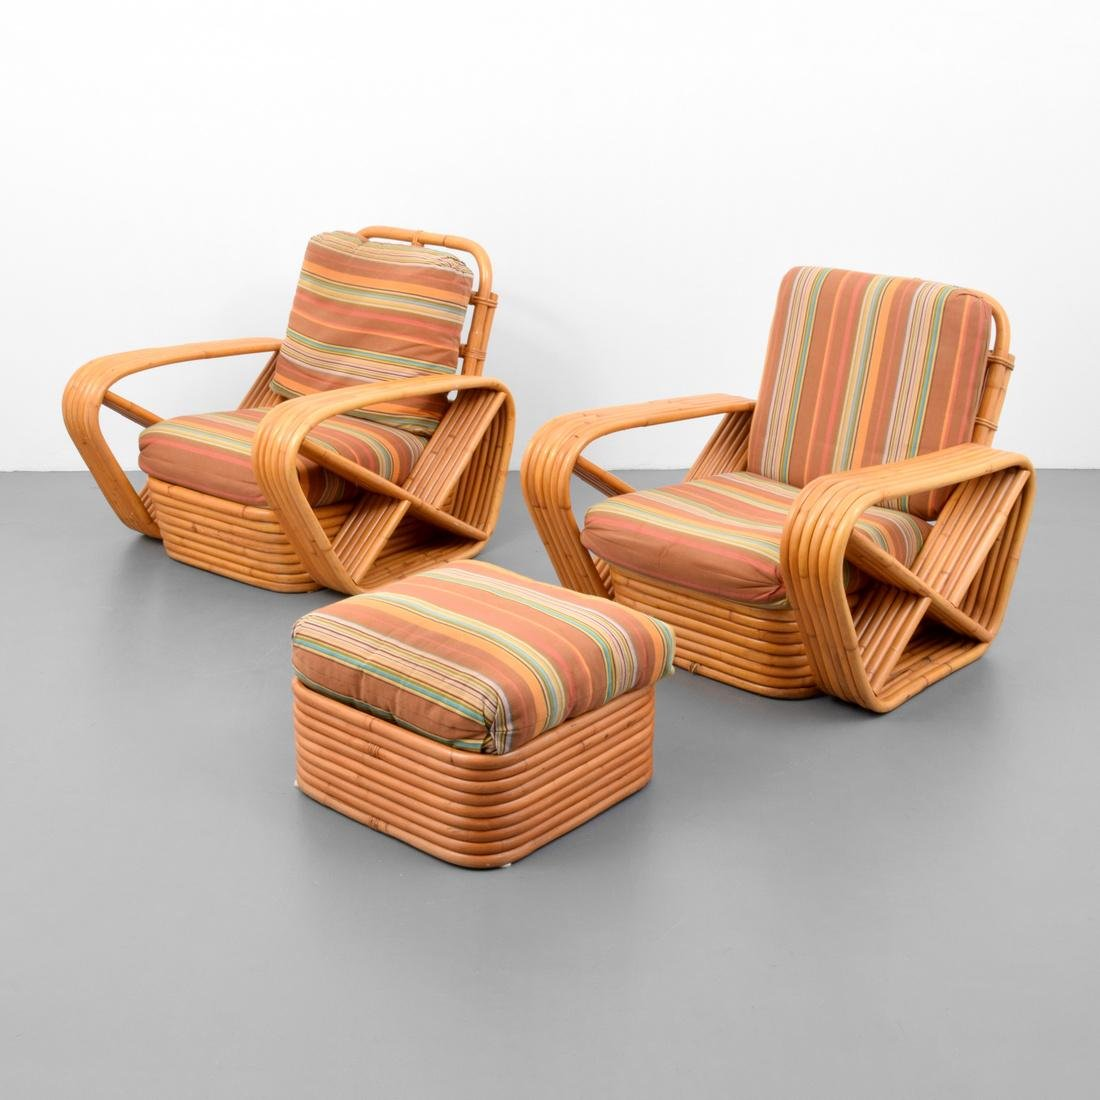 Rattan Lounge Chairs & Ottoman, Manner of Paul Frankl